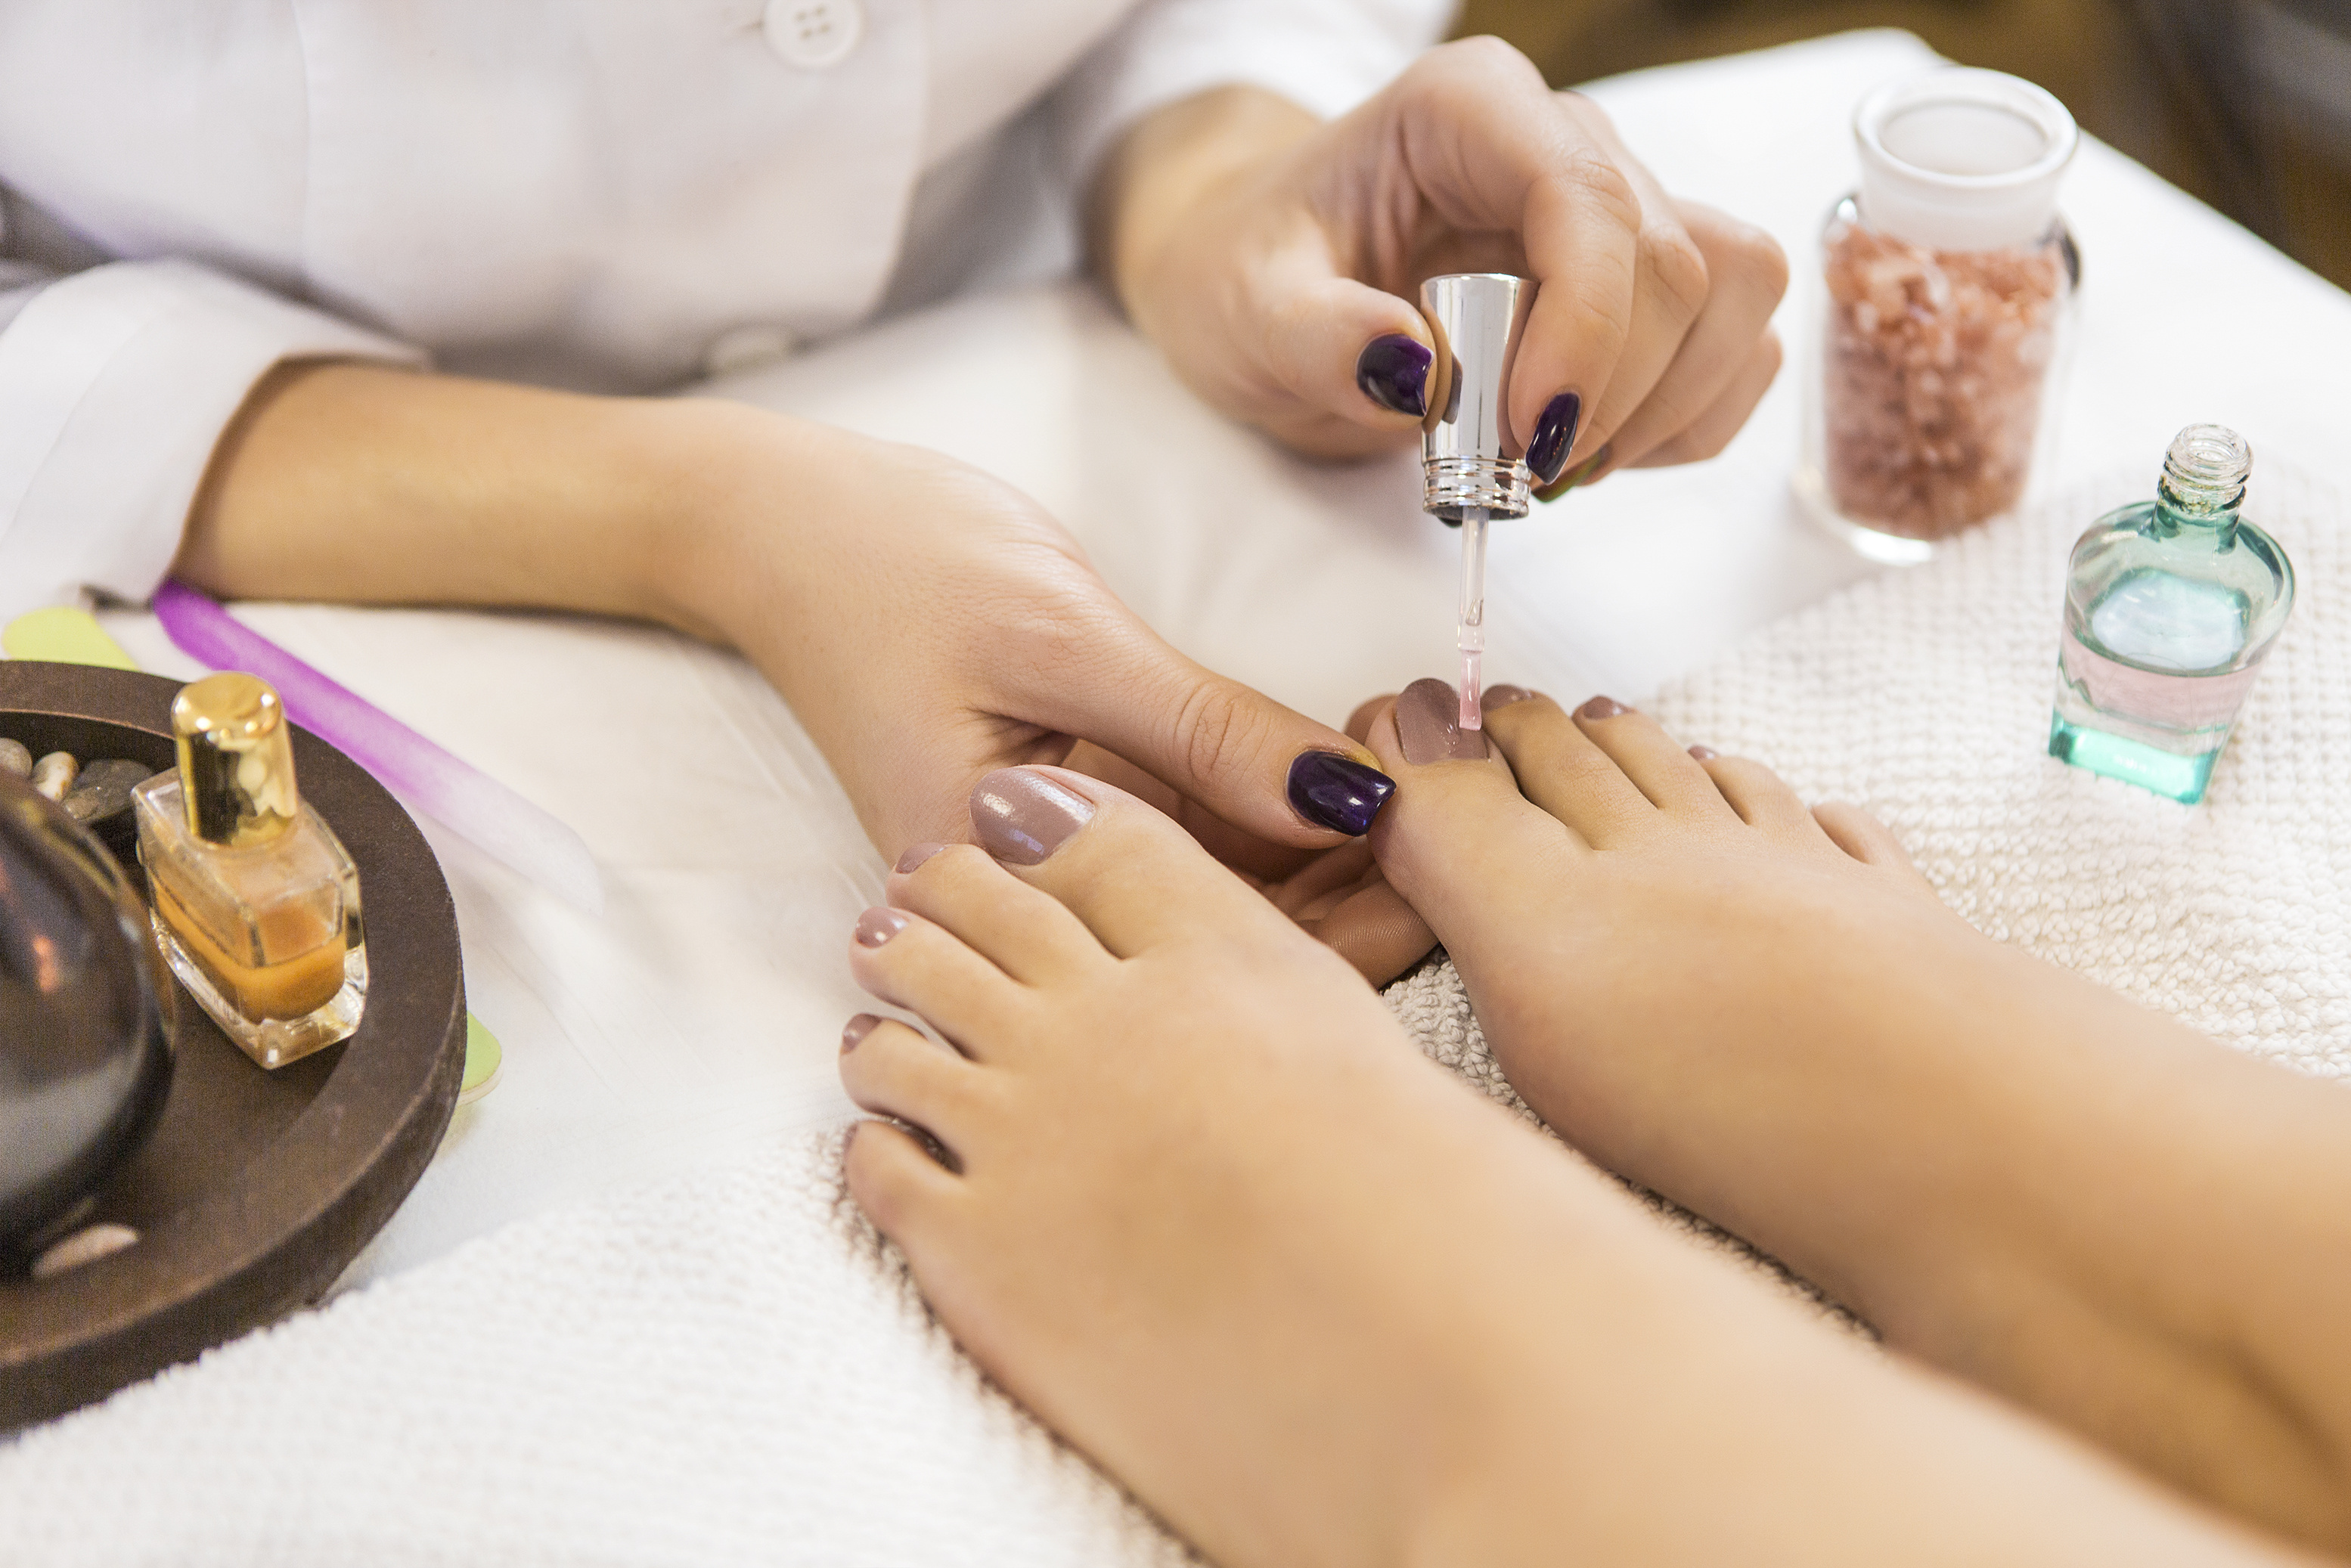 Gel Pedicure with Return Soak-Off / Classic Pedicure for 1 Person (2 Sessions)